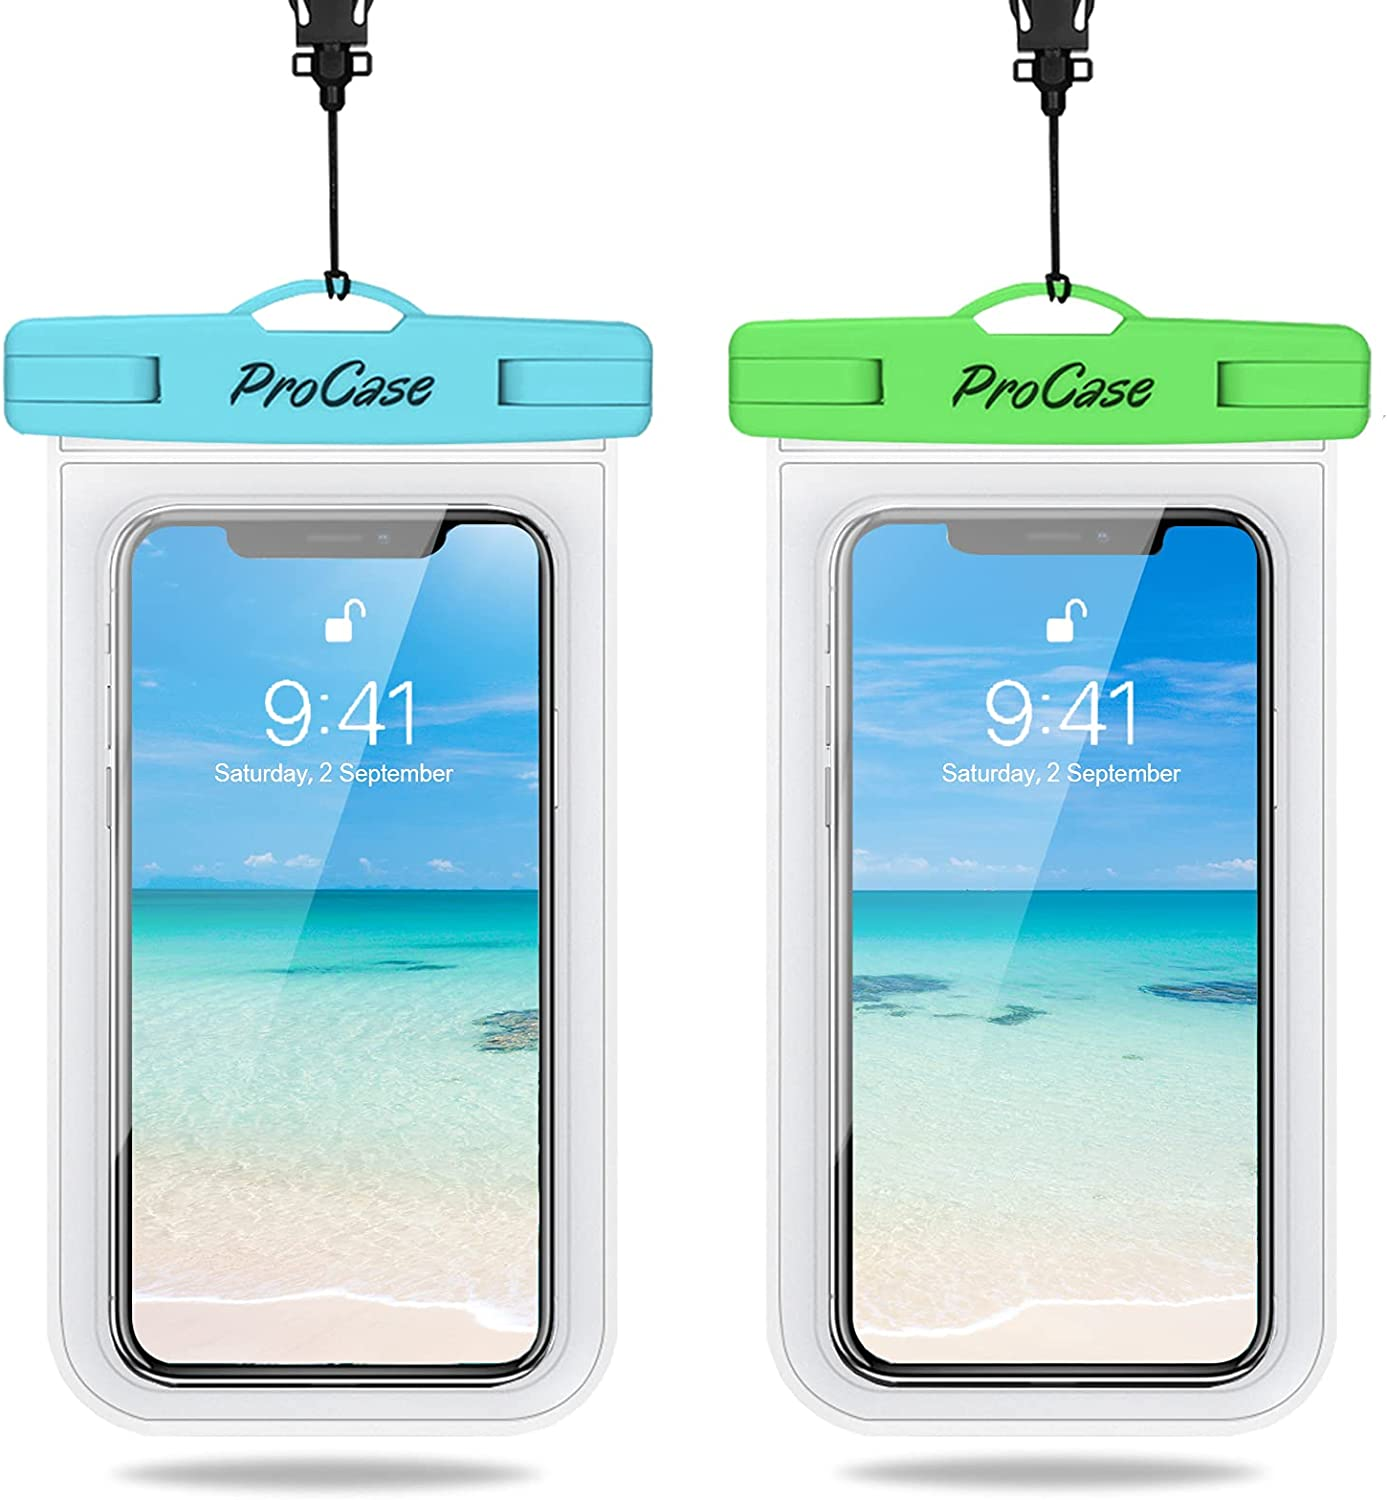 ProCase Waterproof Phone Pouch 2 Pack, Universal Cellphone Waterproof Underwater Case Dry Bag for iPhone 13 Pro Max 13 Mini 12 Pro Max 11 Pro Xs XR X 8 7 6S, Galaxy S20 S10 Pixel up to 7